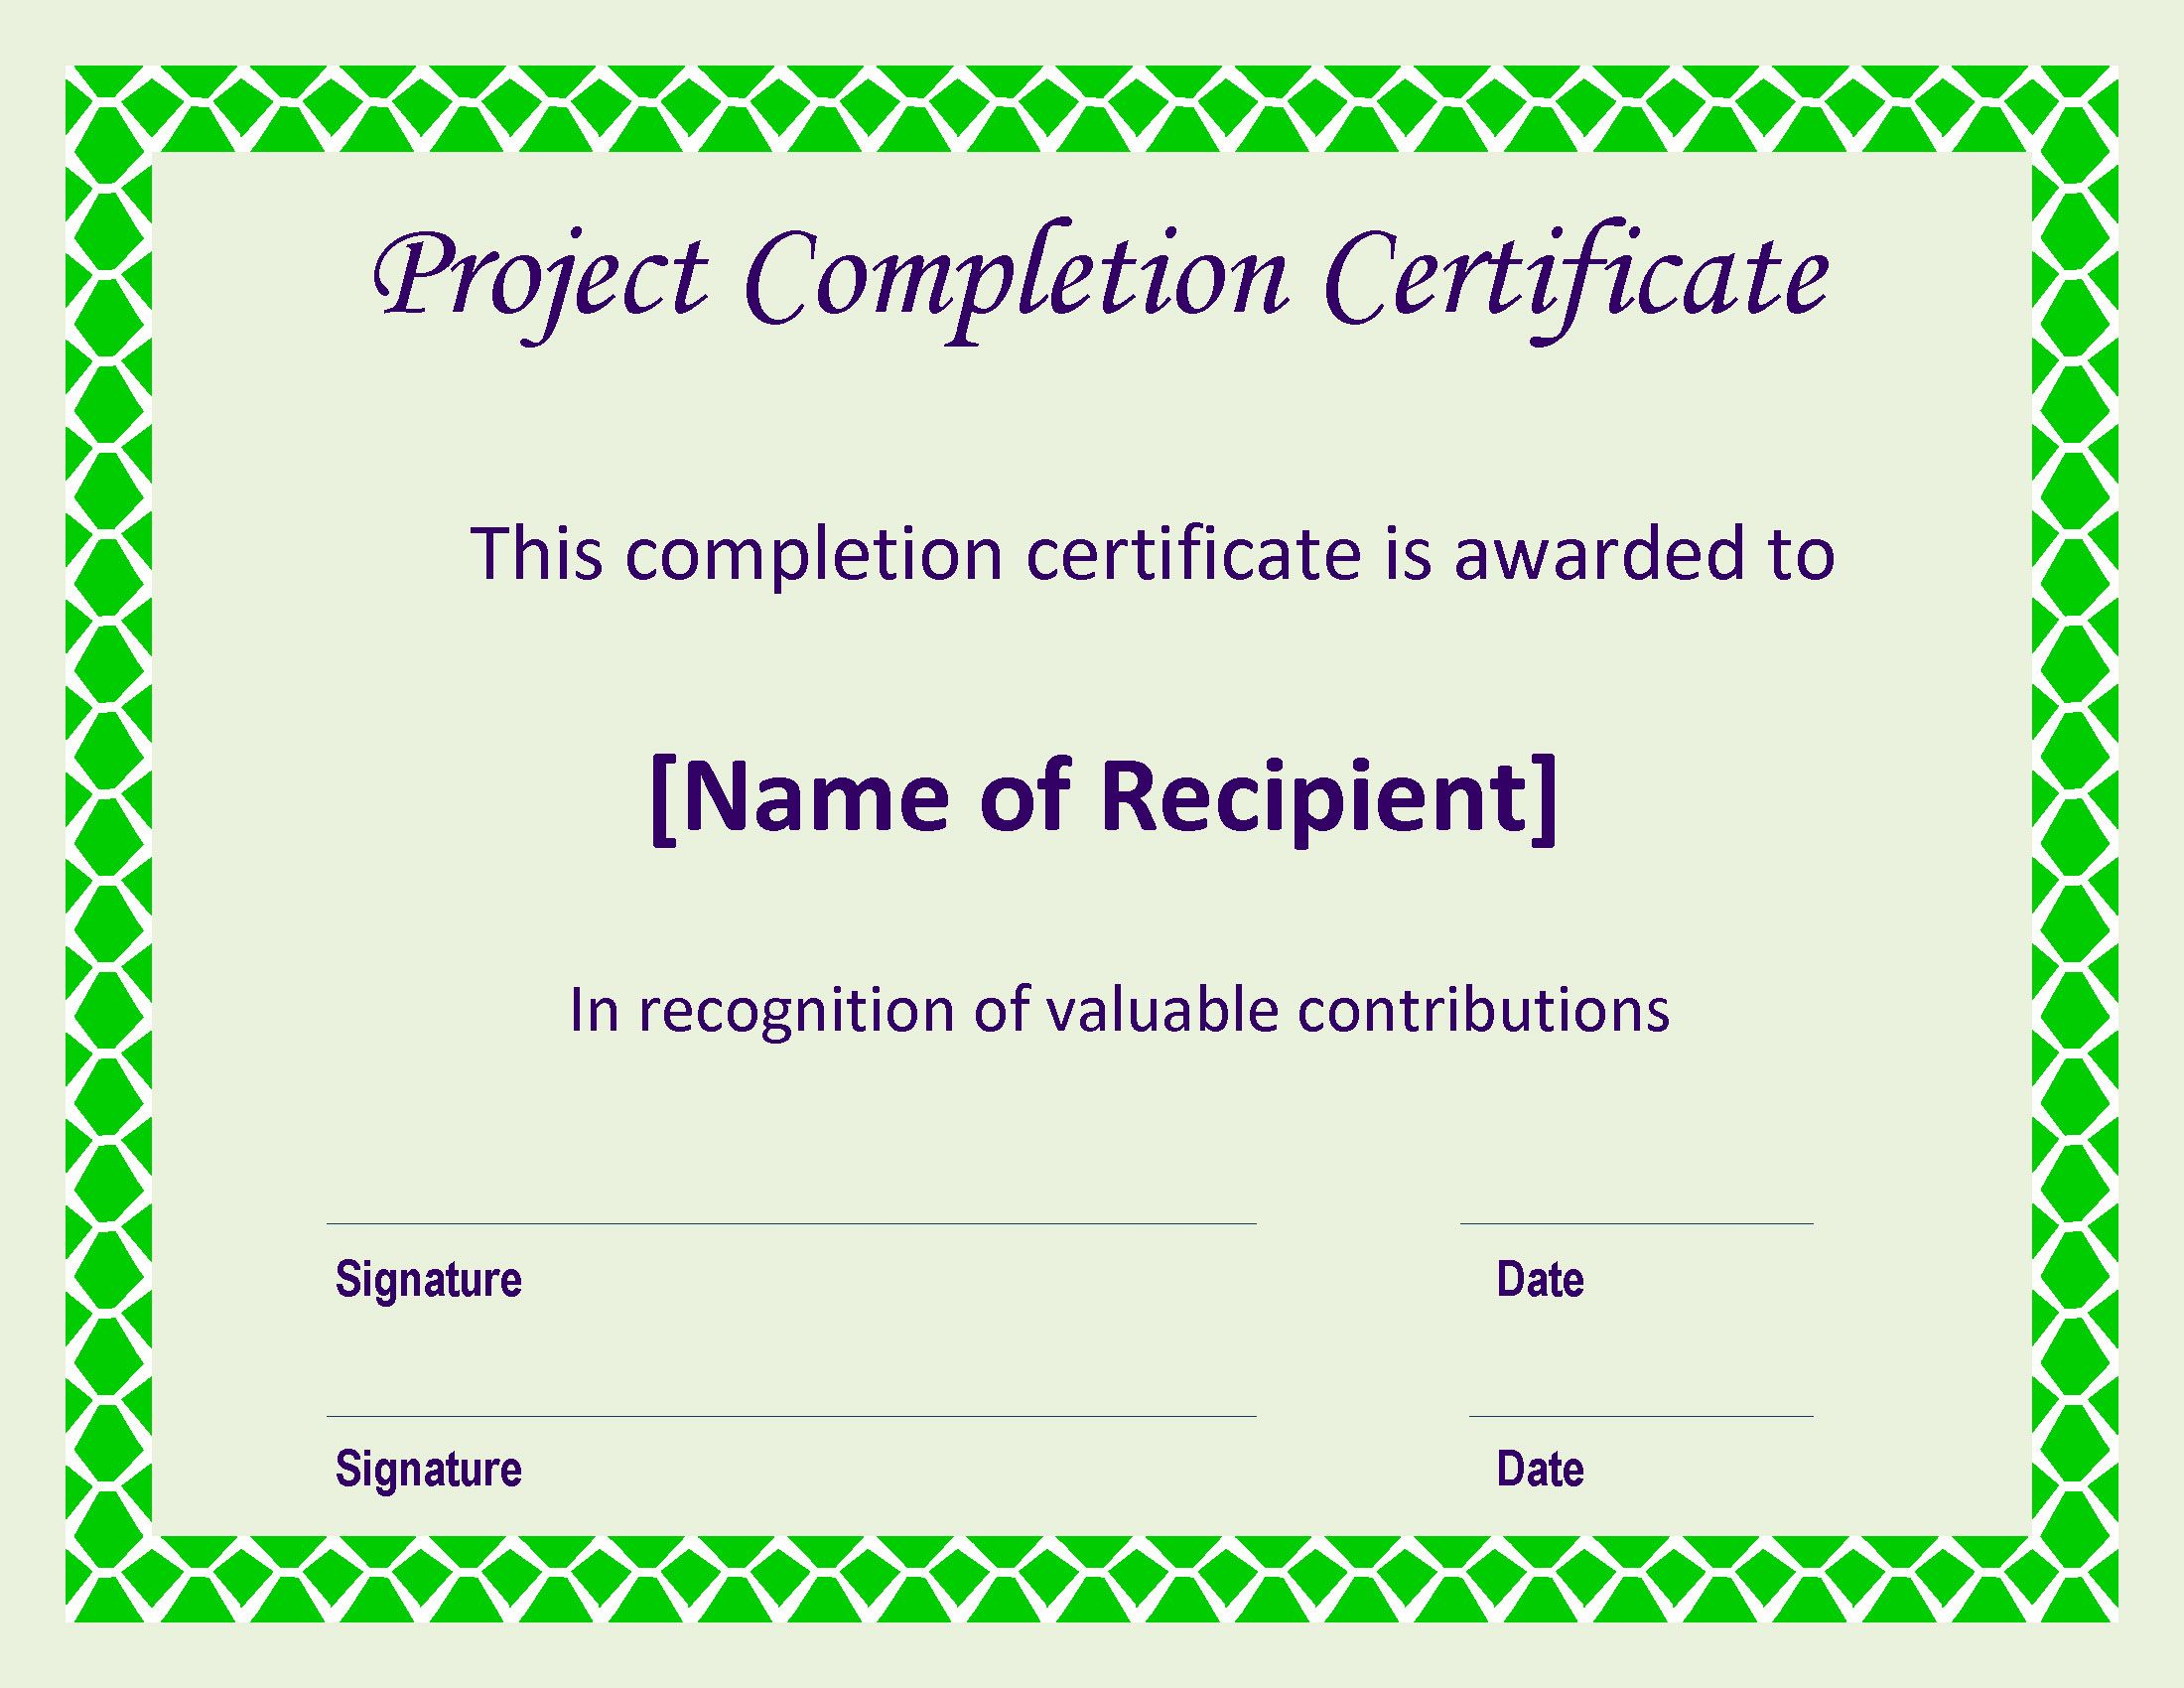 Free certificate of completion project templates at certificate of completion project main image download template xflitez Gallery